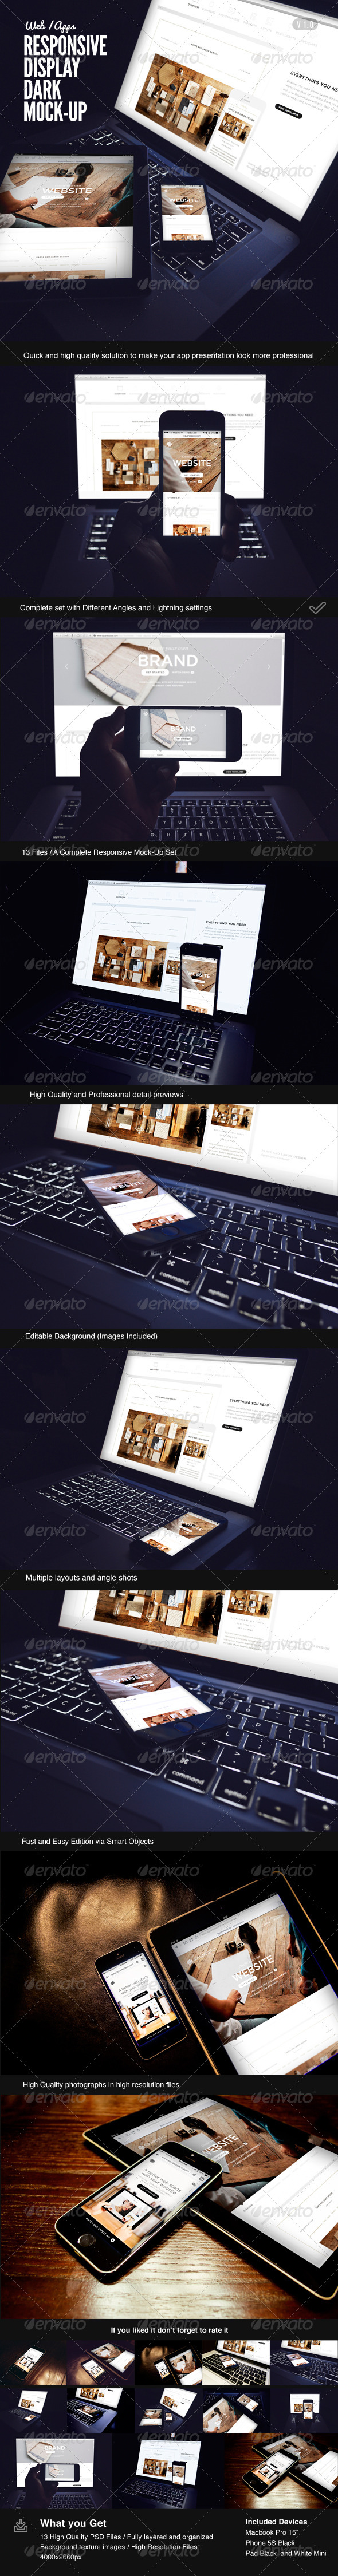 GraphicRiver Responsive Display Dark Mock-Up 7550502